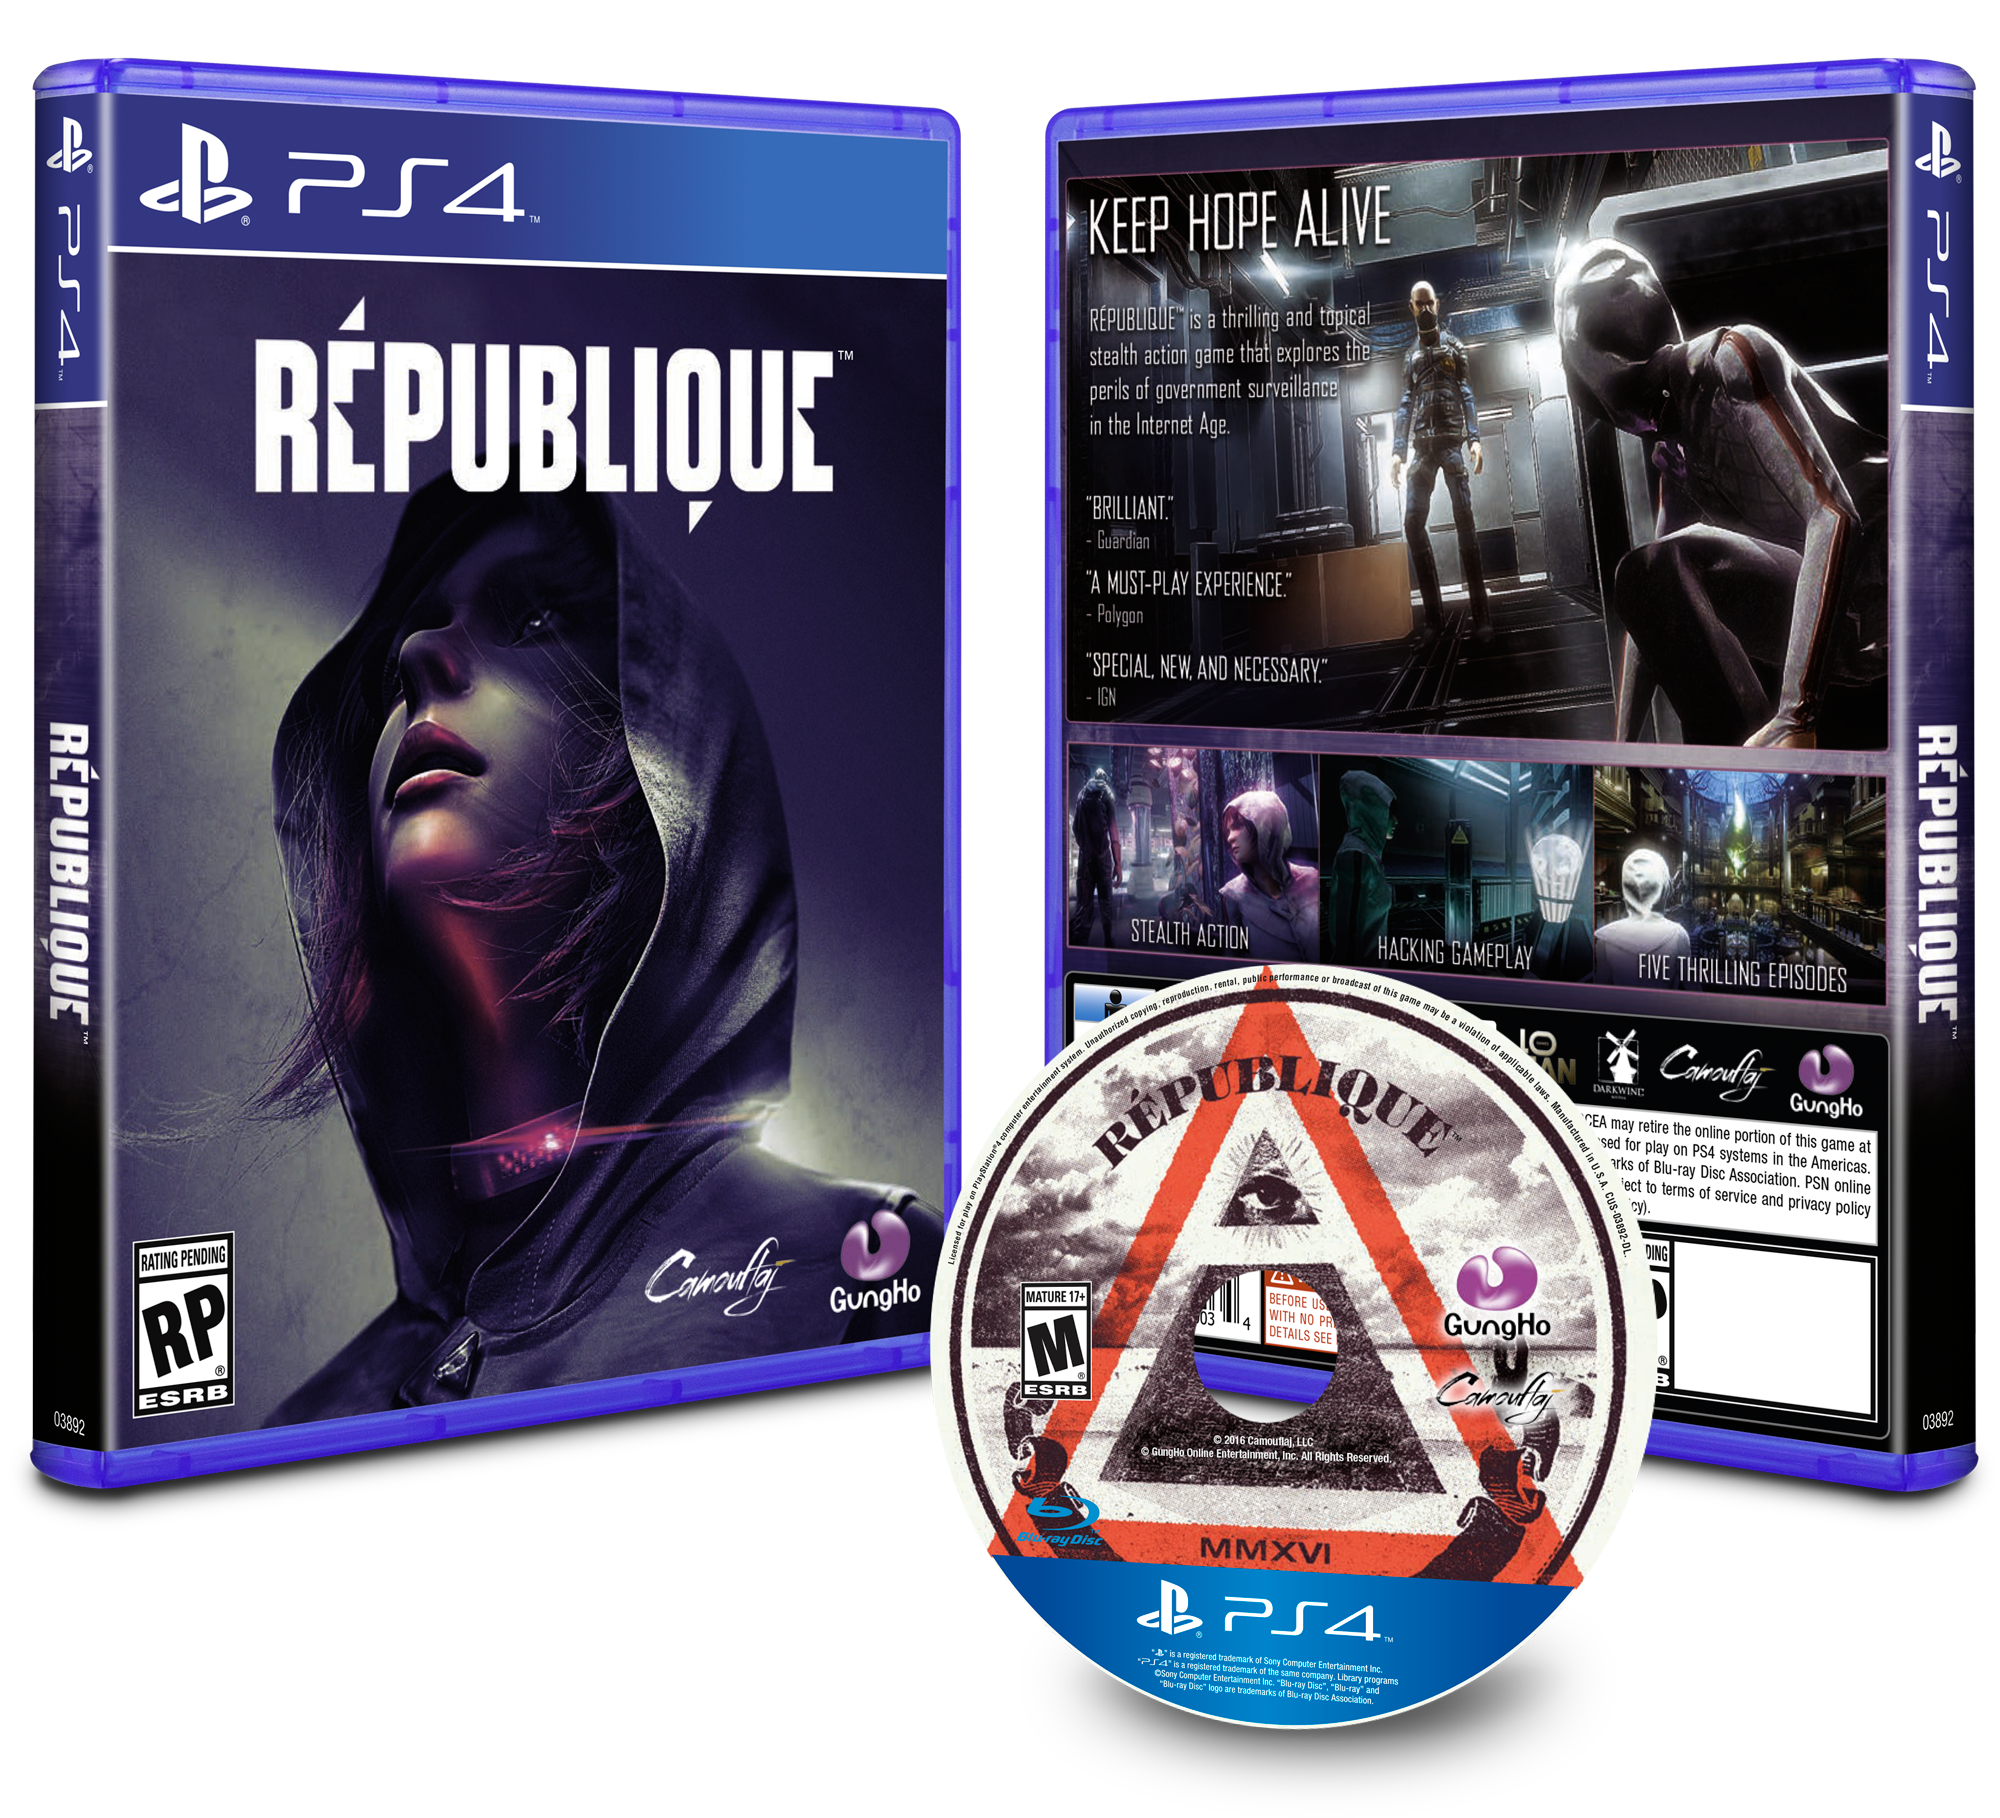 rep_republique_packaging